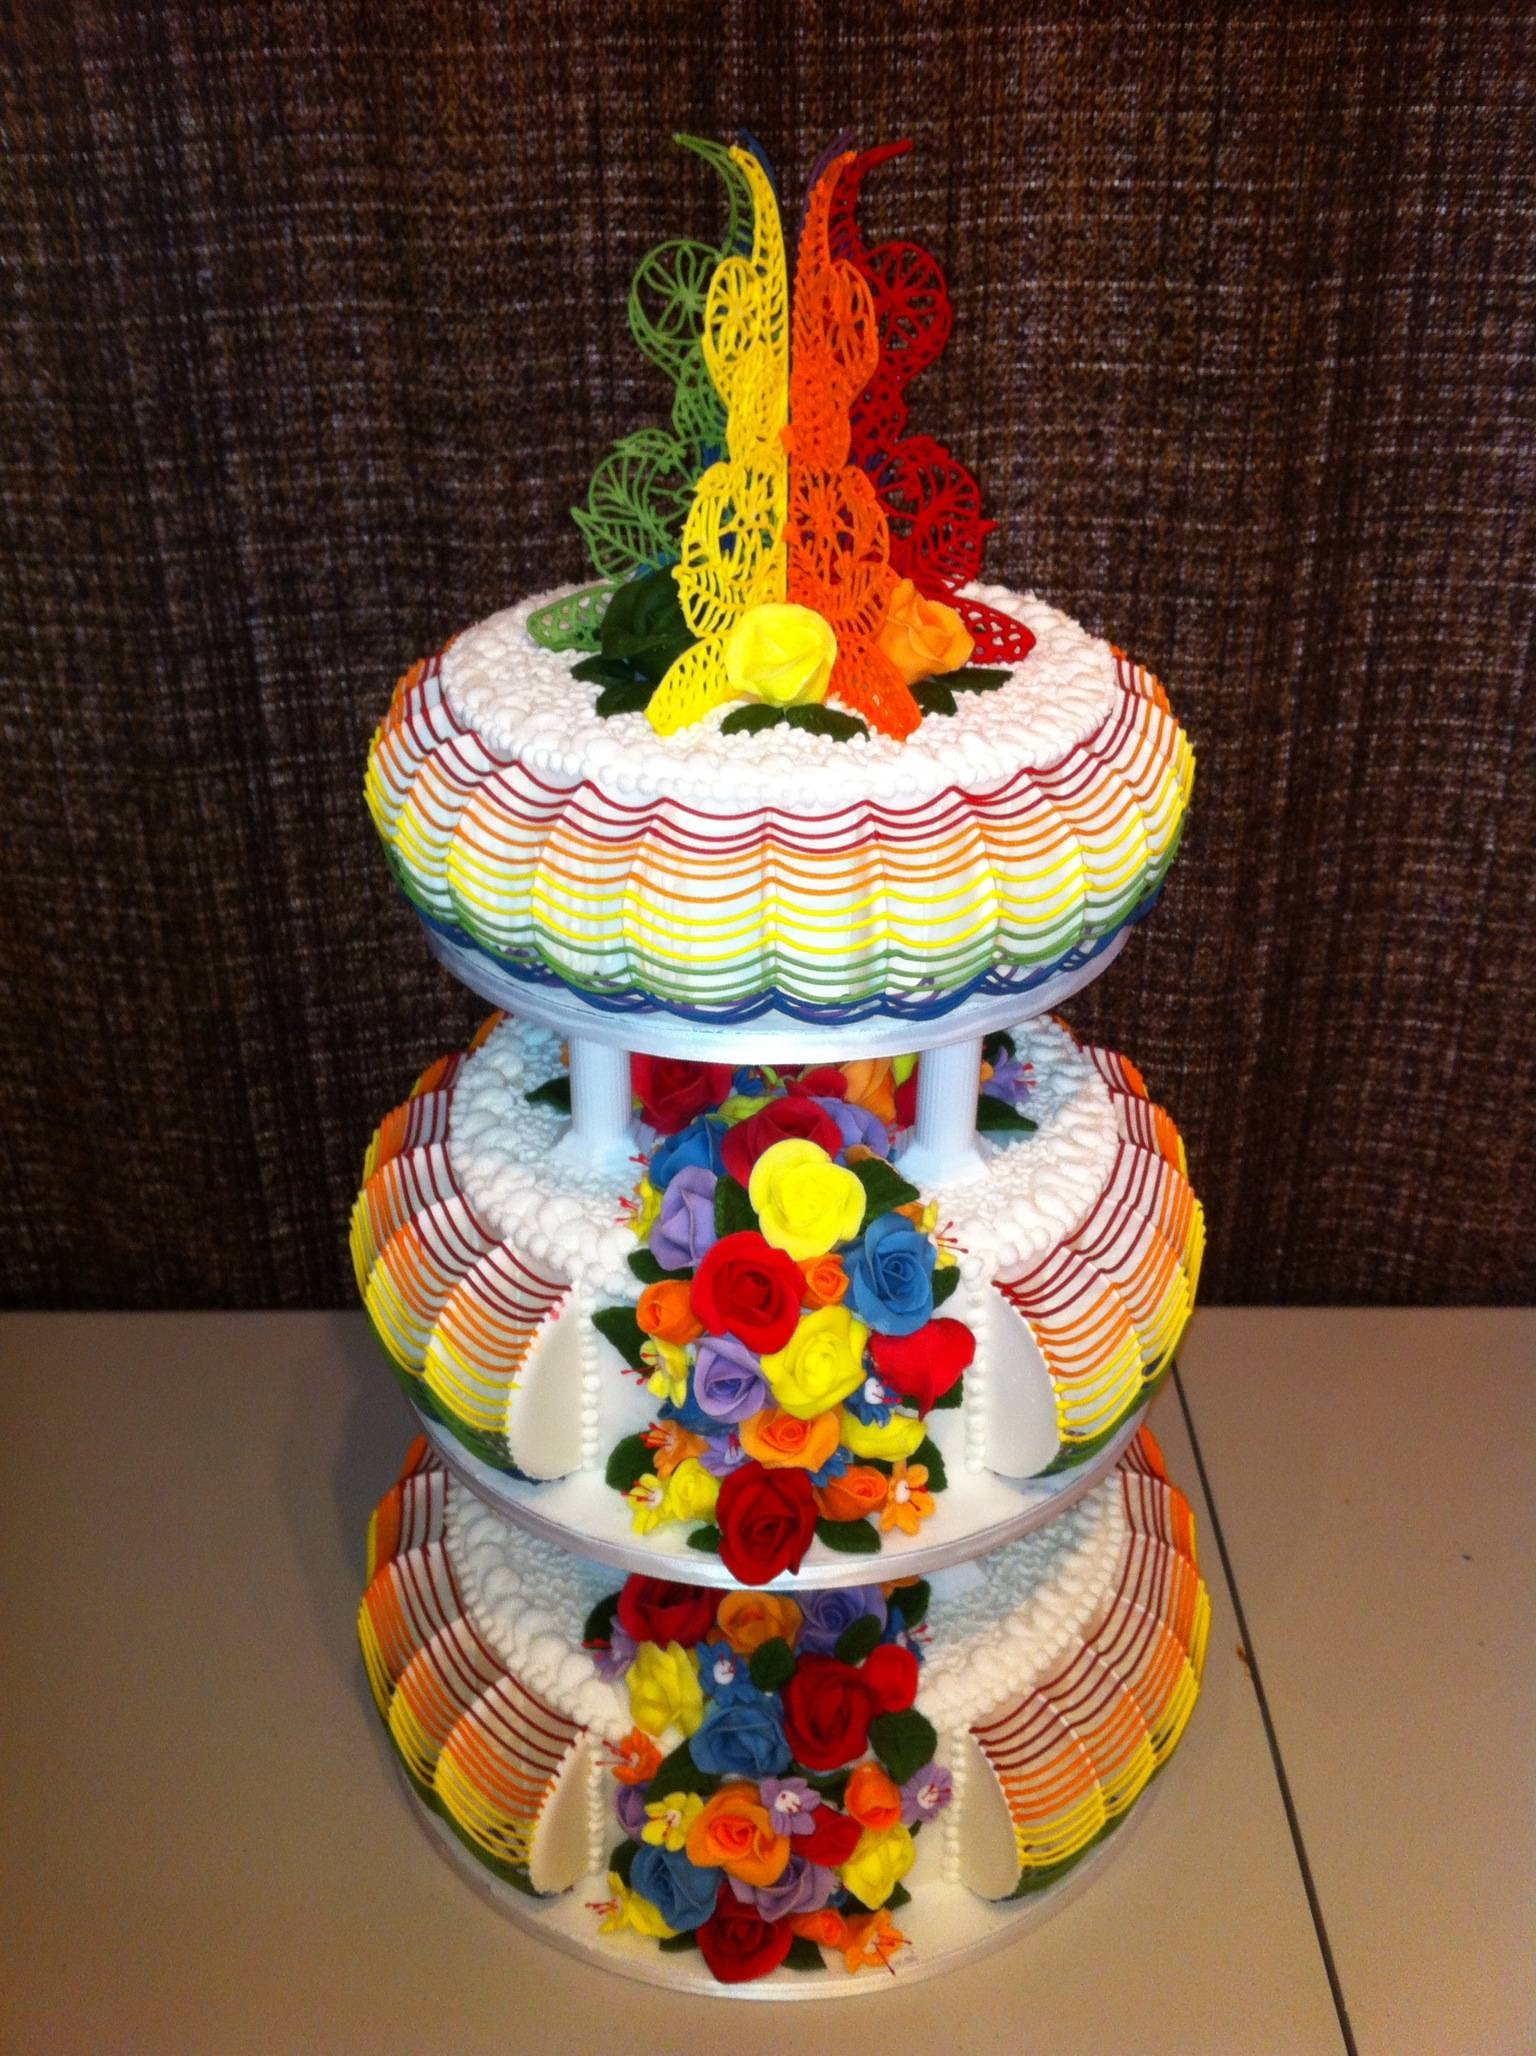 My Dad's rainbow themed wedding cake for my cousin